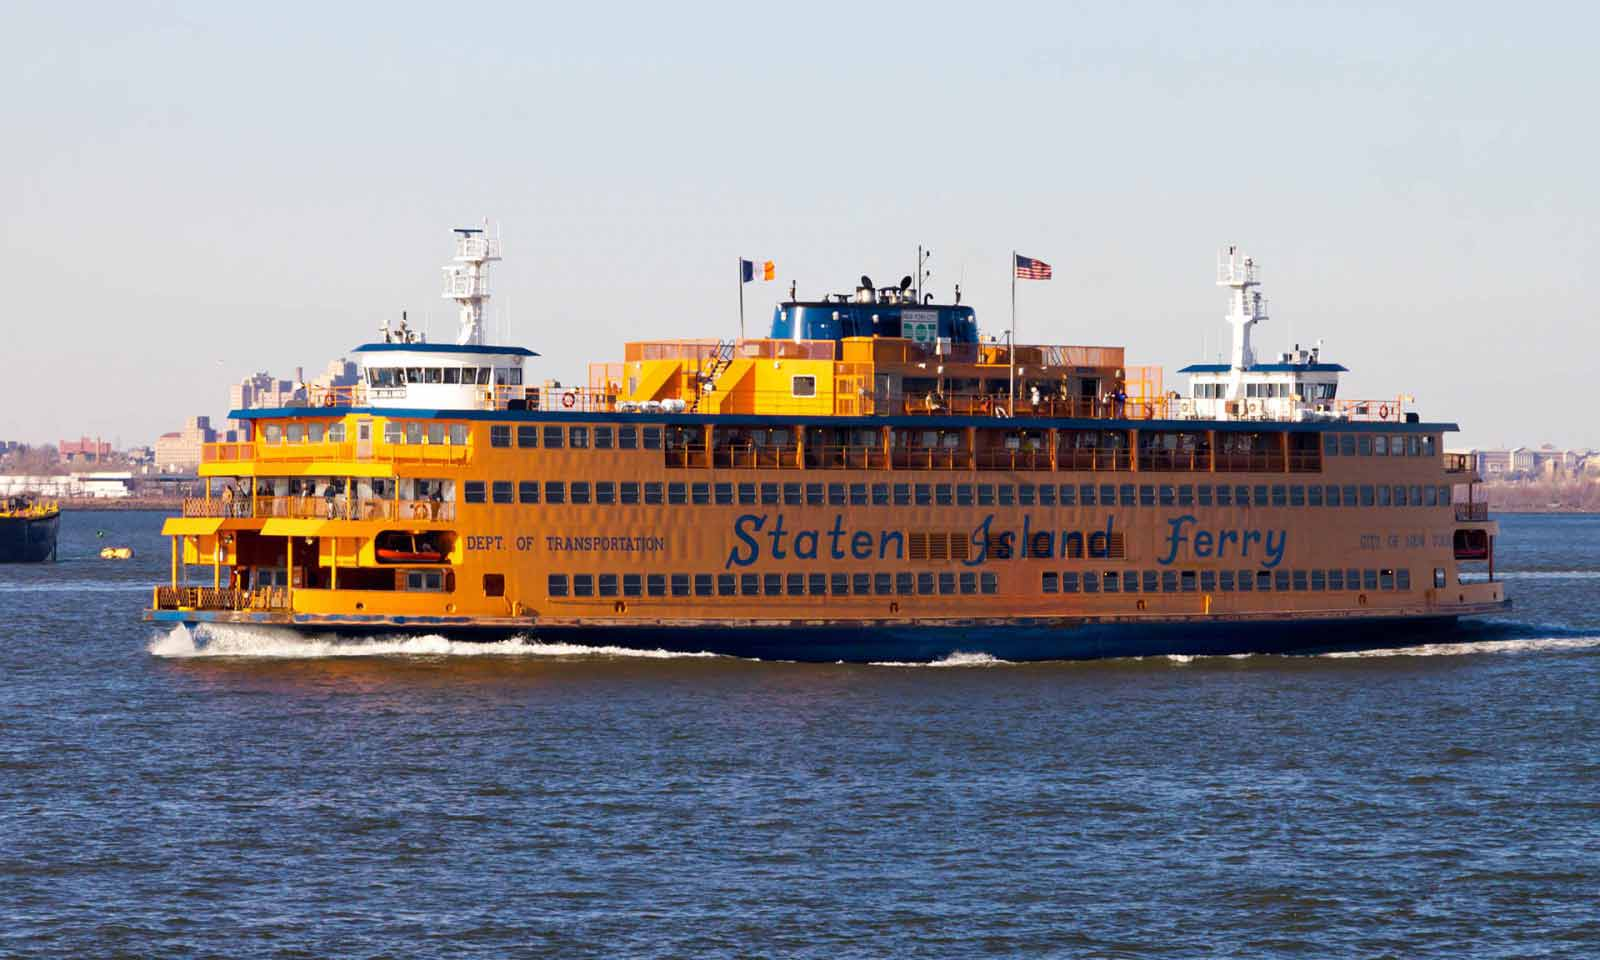 staten-island-ferry-new-york